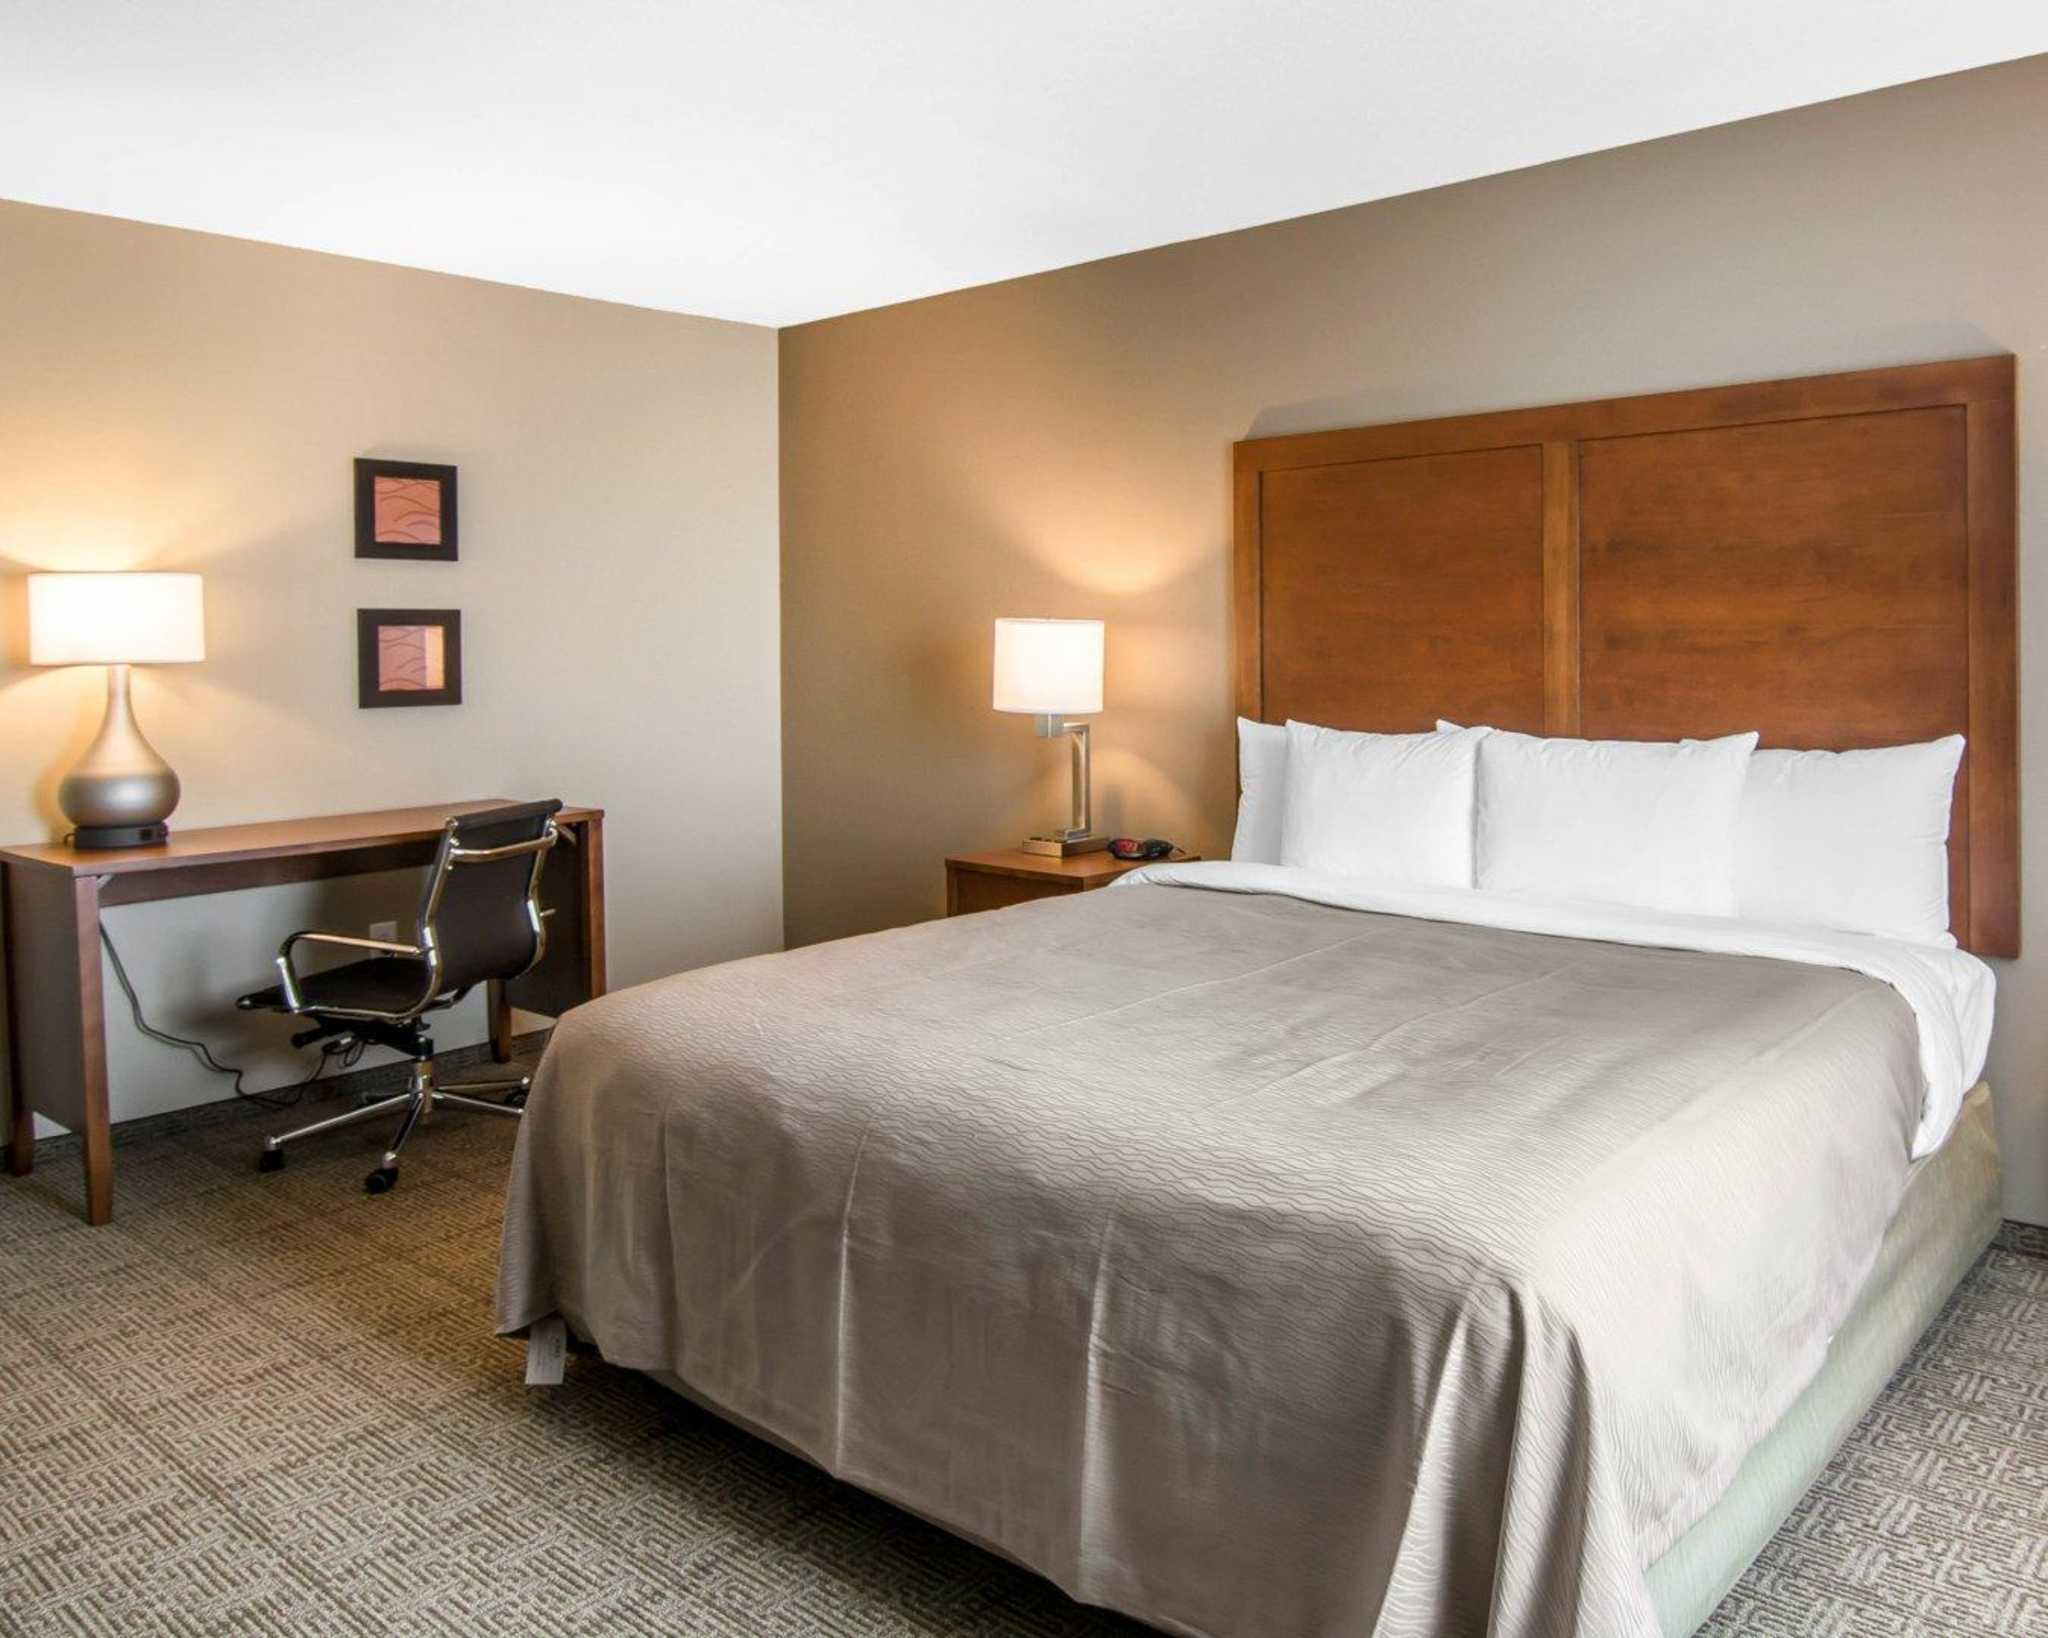 Comfort Inn South Chesterfield - Colonial Heights image 7